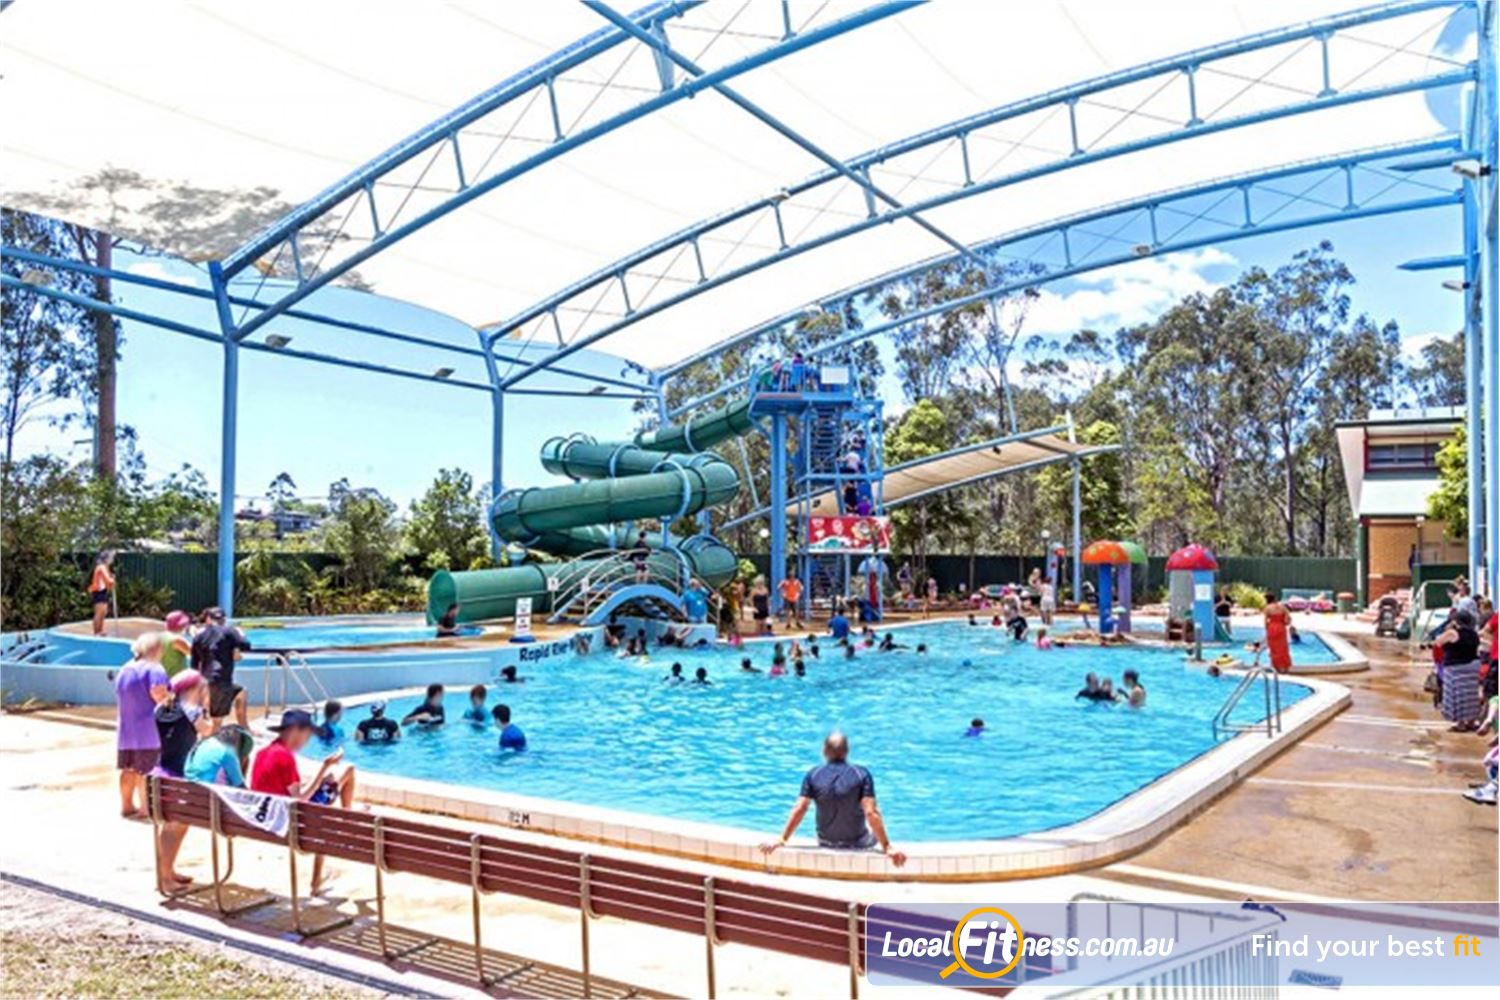 Albany Creek Leisure Centre Near Bridgeman Downs Enjoy the Outdoor Water Slide and Rapid River features.